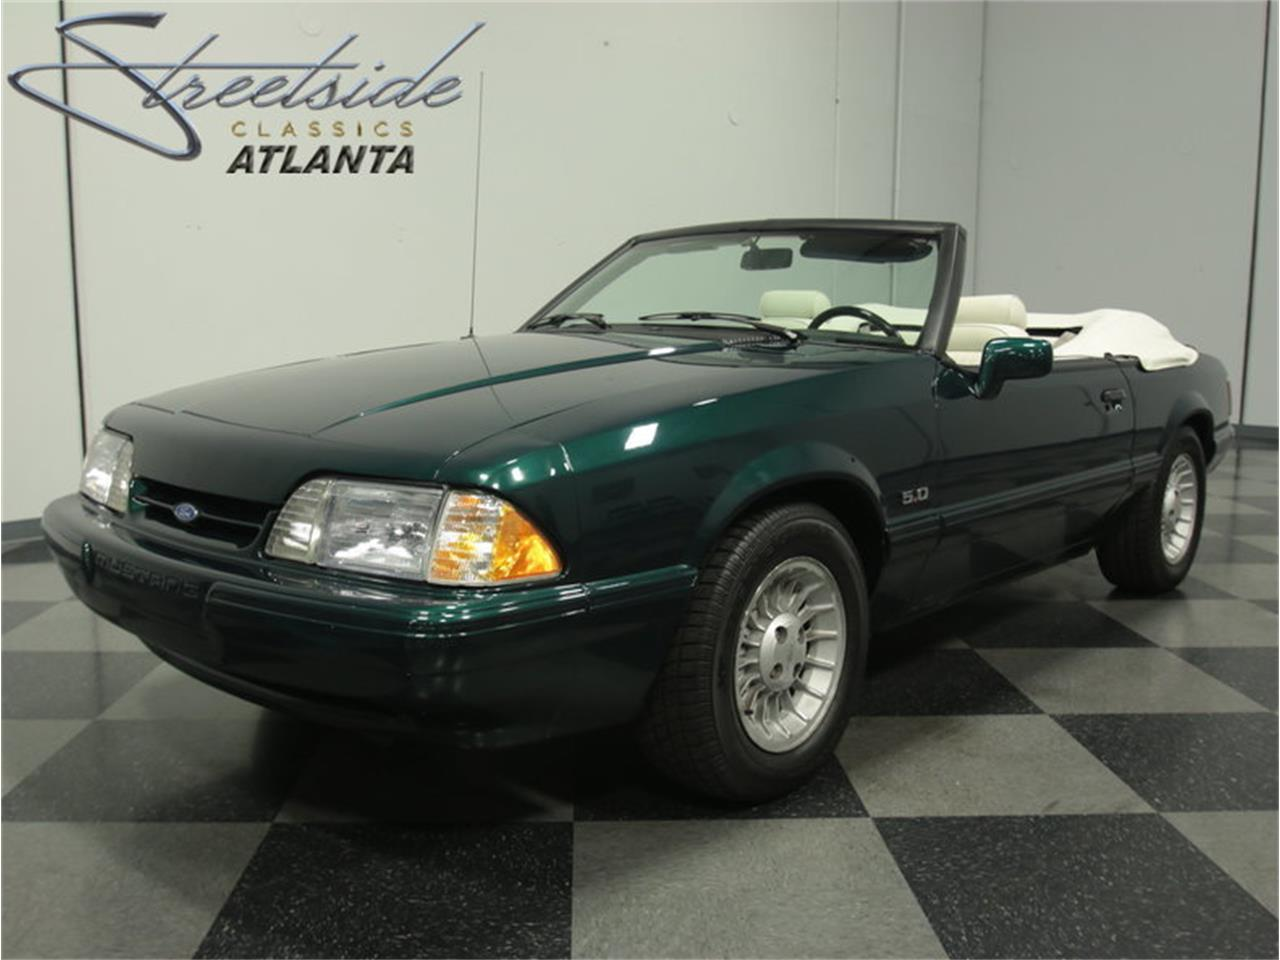 Large picture of 90 mustang lx 7 up edition irsa